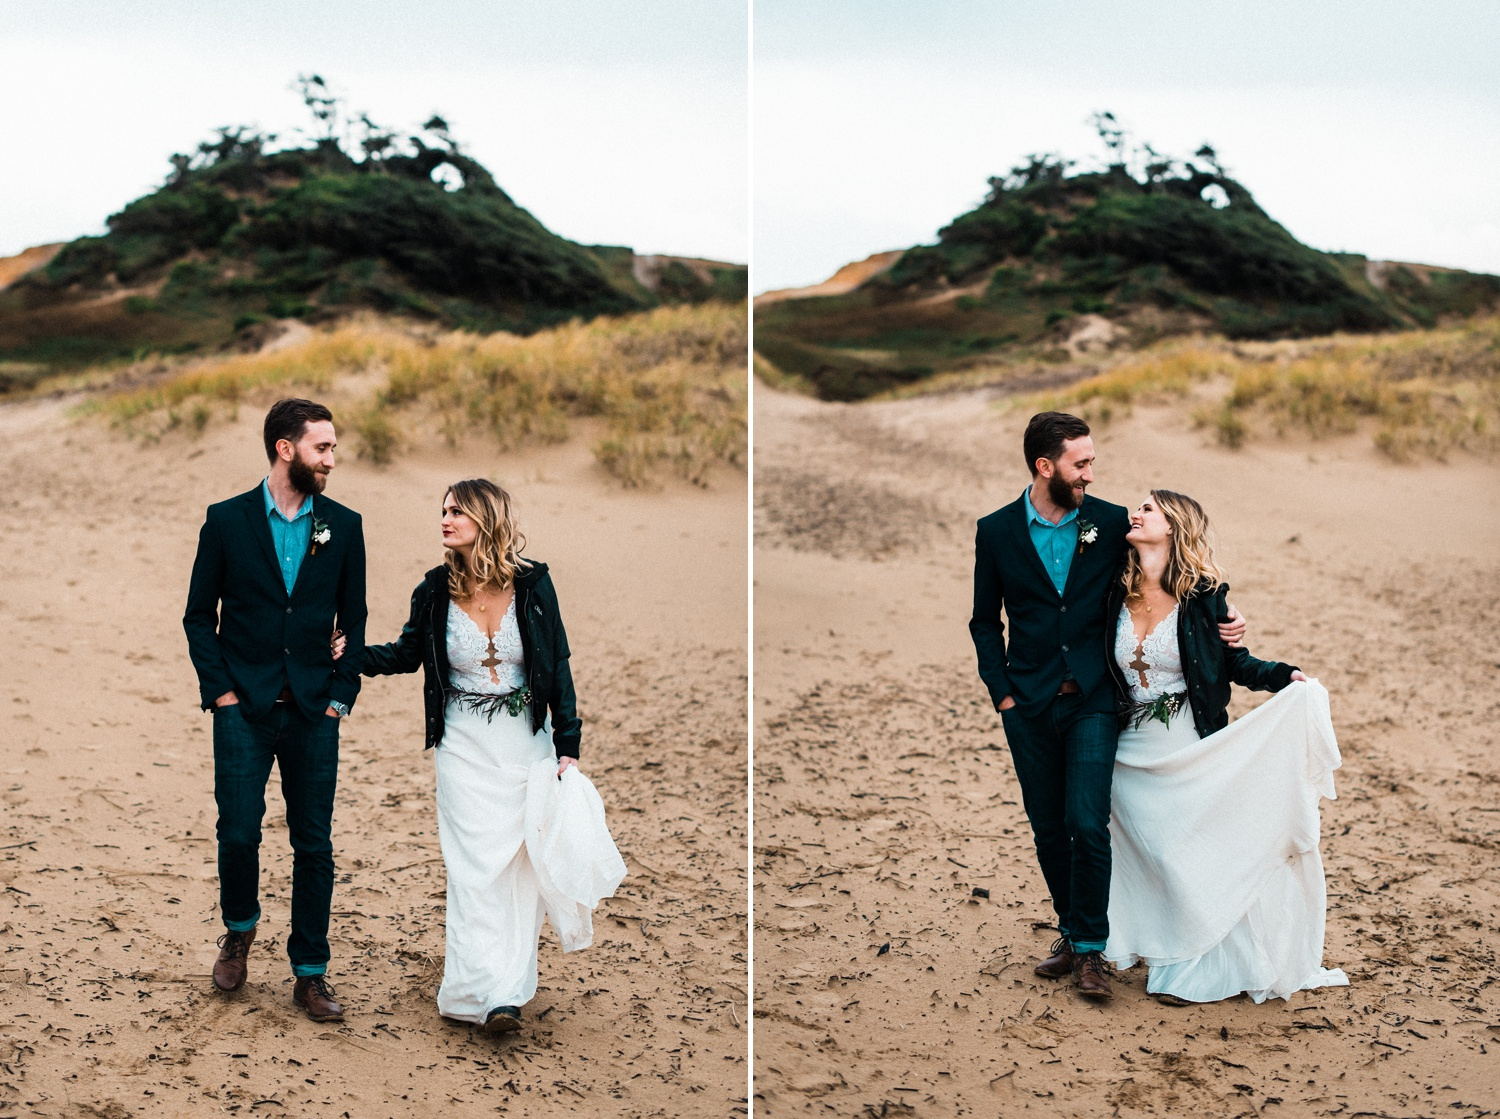 Oregon_Coast_Elopement_Wedding_The_Foxes_Photography_090.jpg